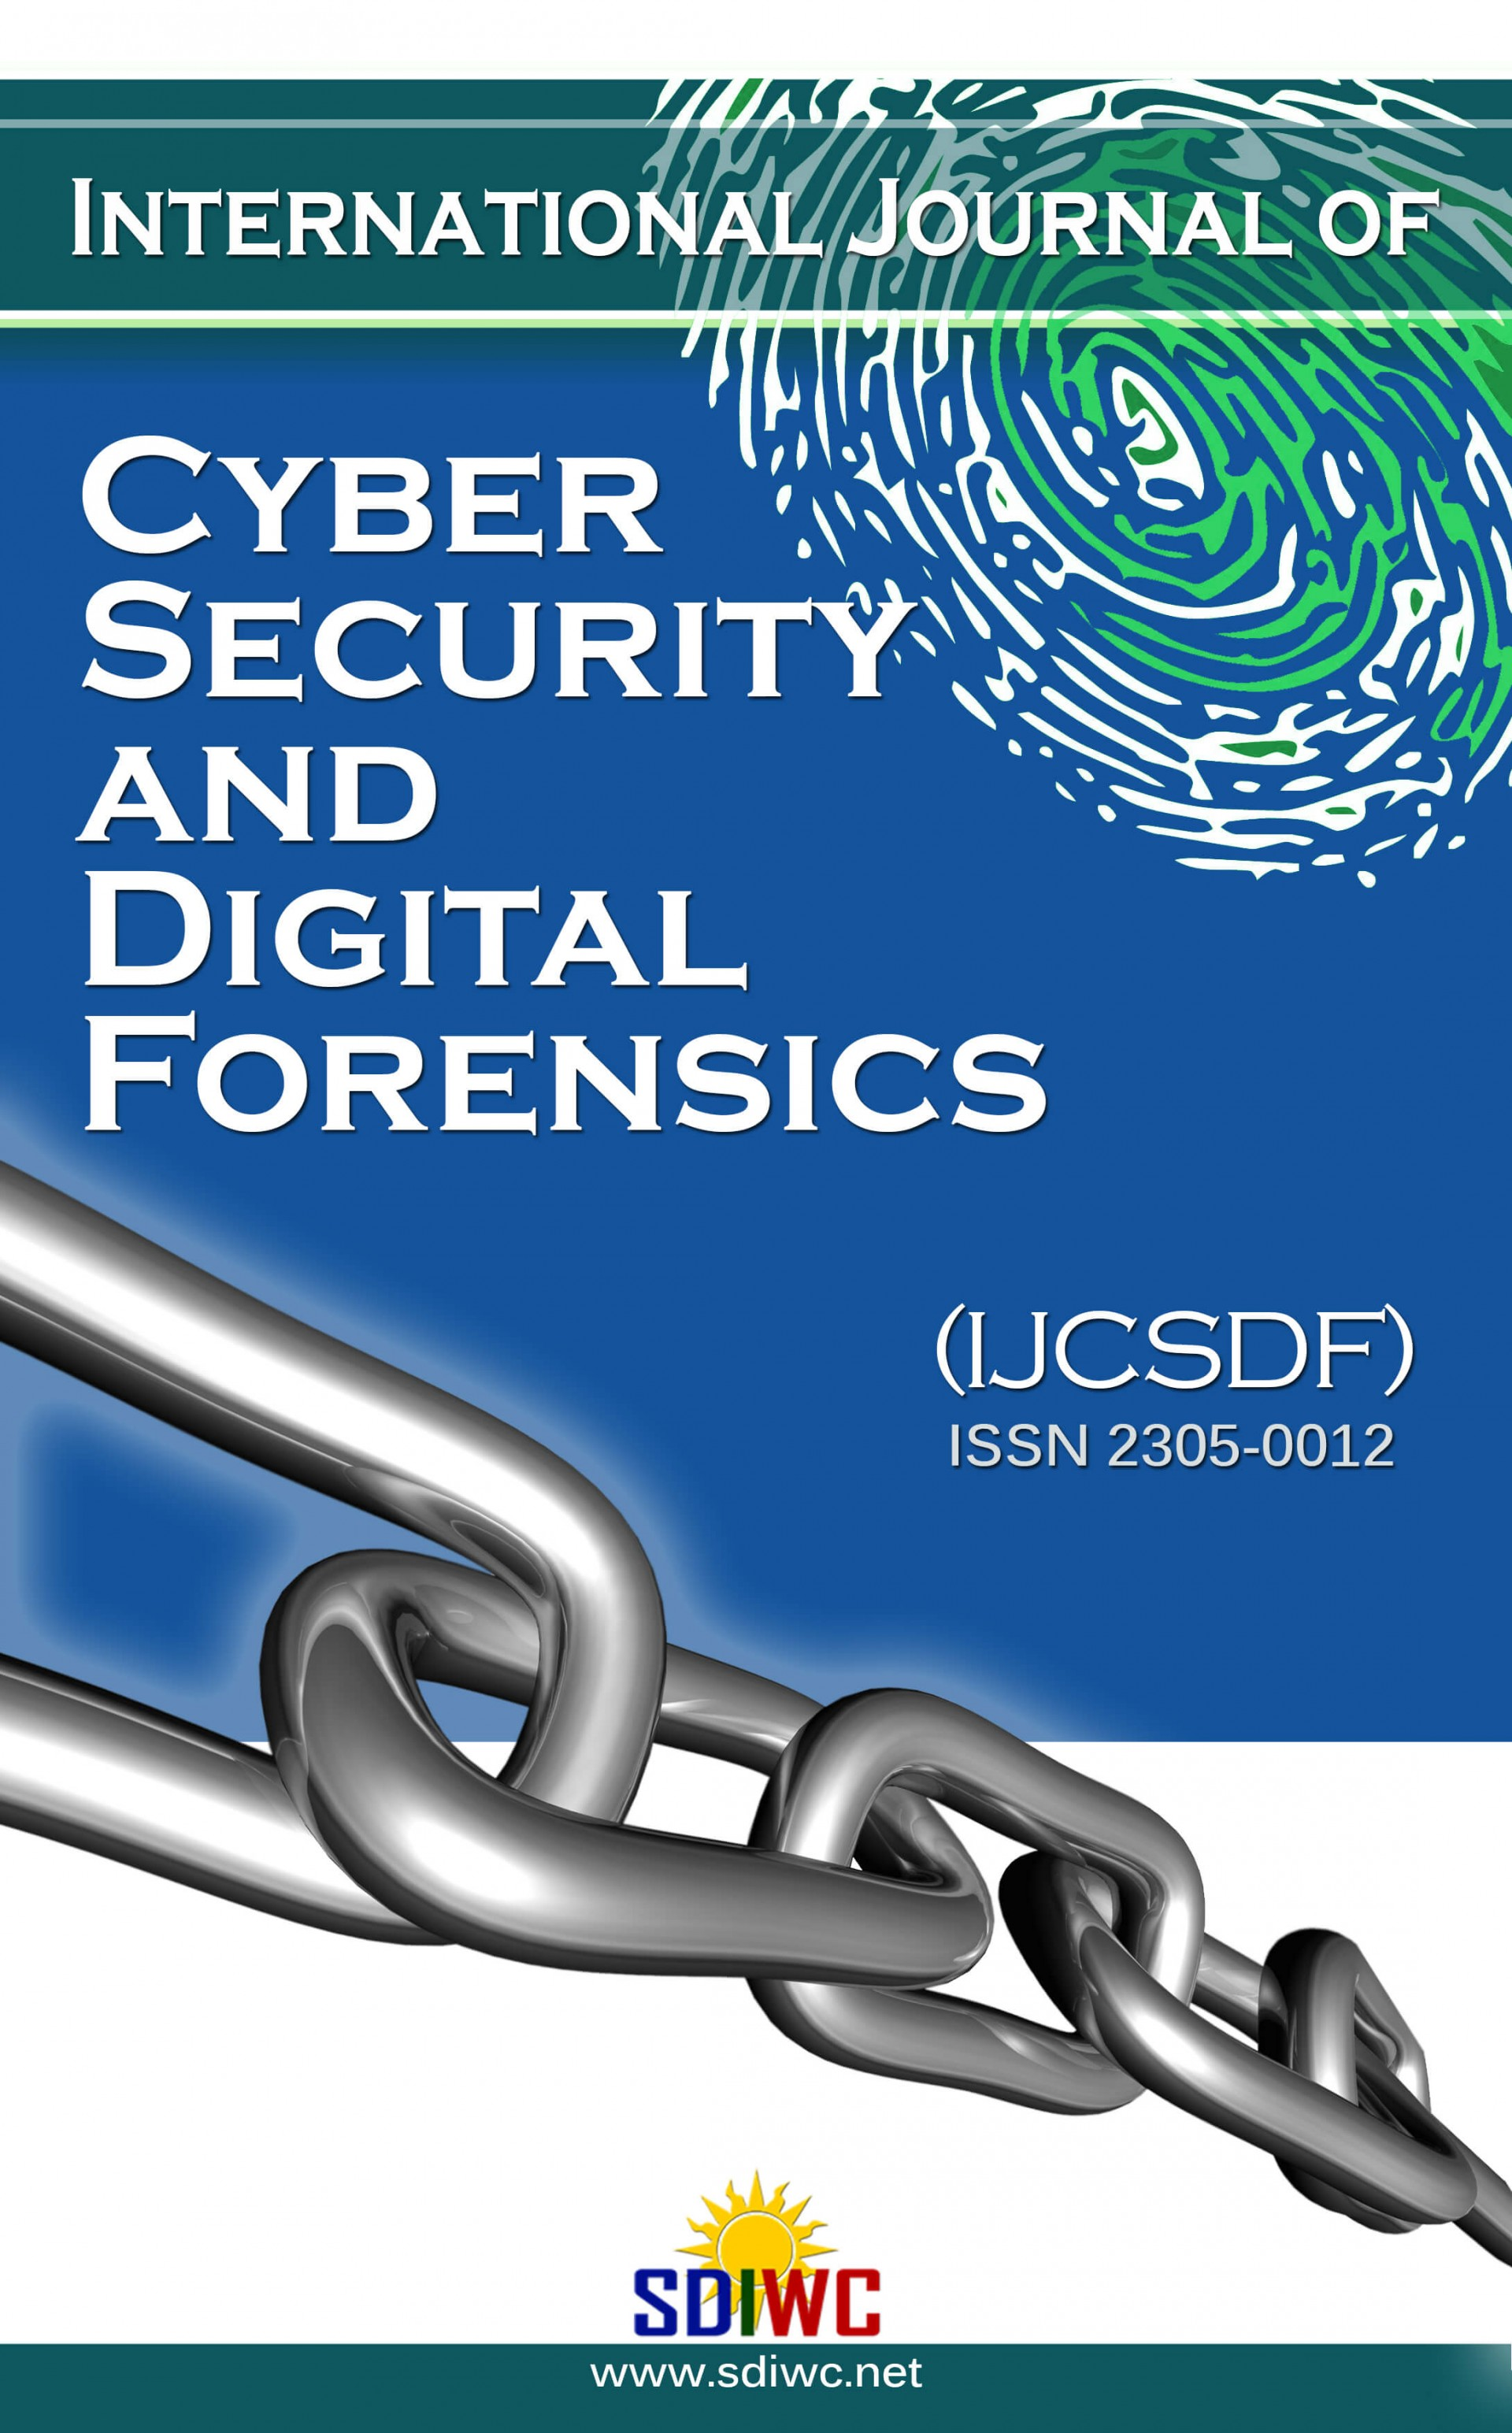 013 Research Paper Cyber Security Papers Pdf Ijcsdf Amazing On 1920